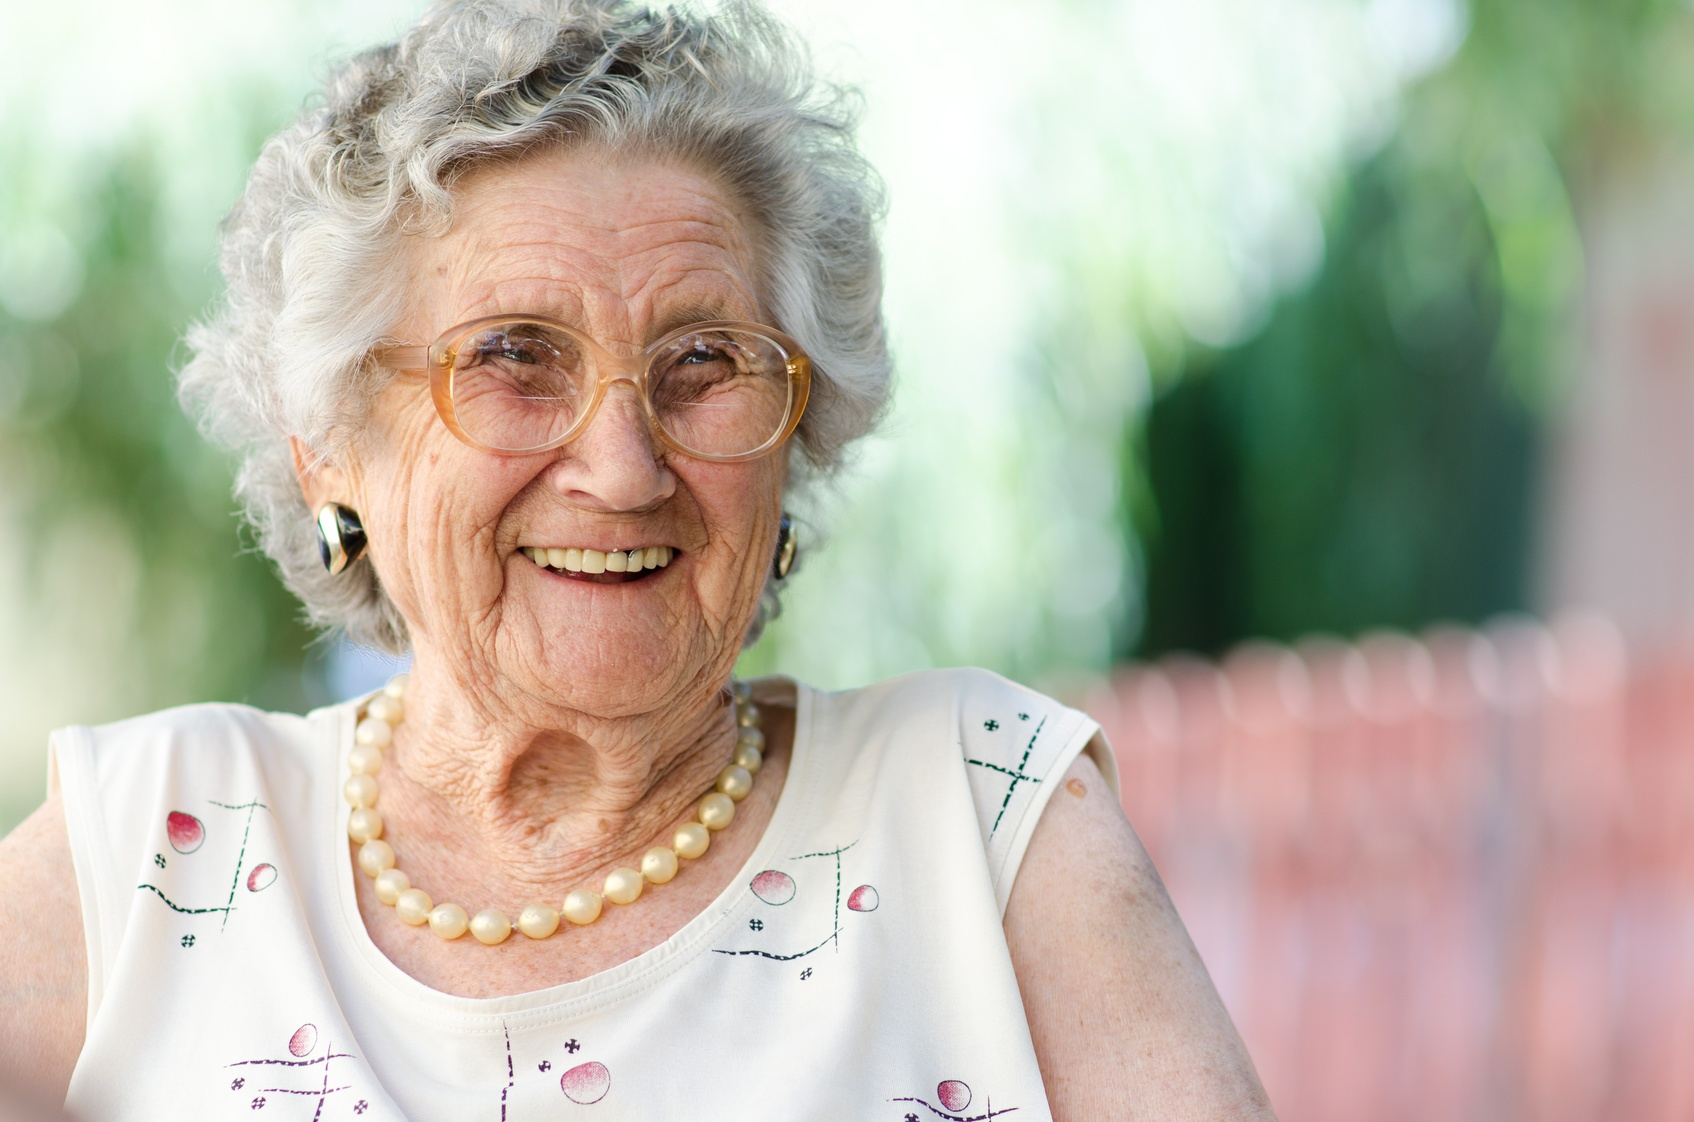 Aging Myths and Facts You Need to Know